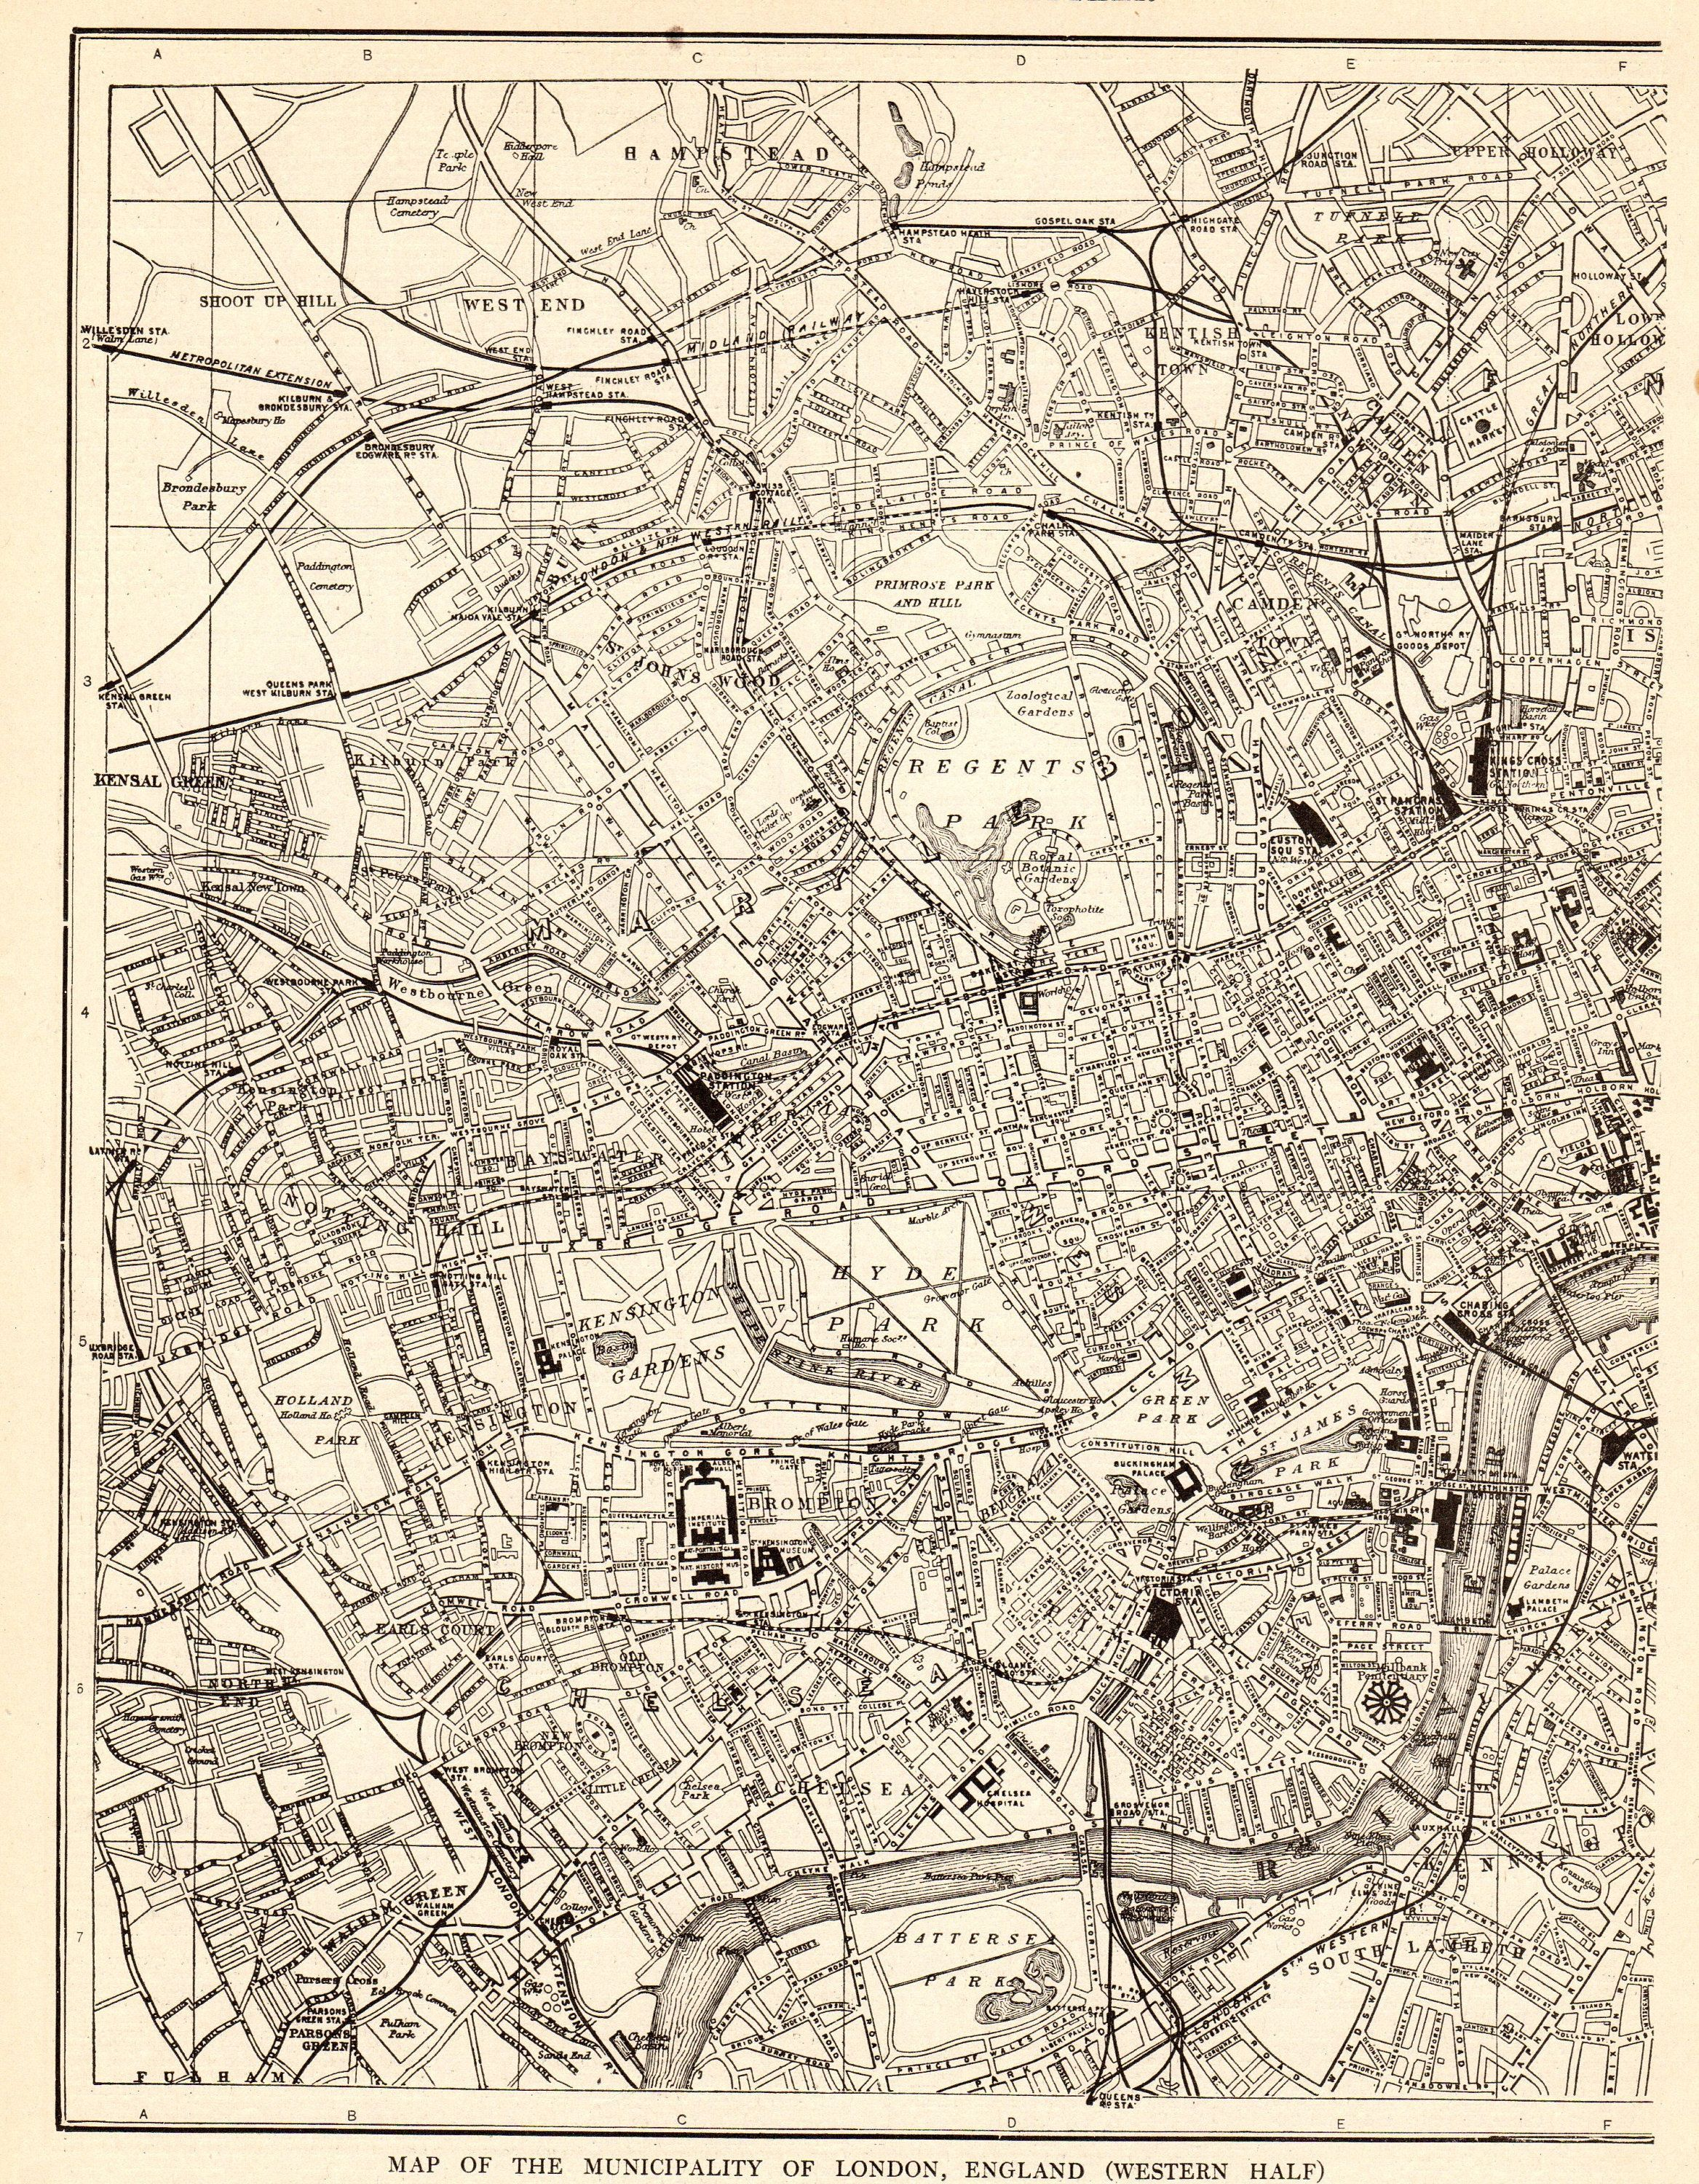 1917 Antique London Street Map Vintage City Map Of London England Black And White Wall Art Gift For Birthday Wedding Anniversary 10651 Antique London Map London Map Street Map Of London